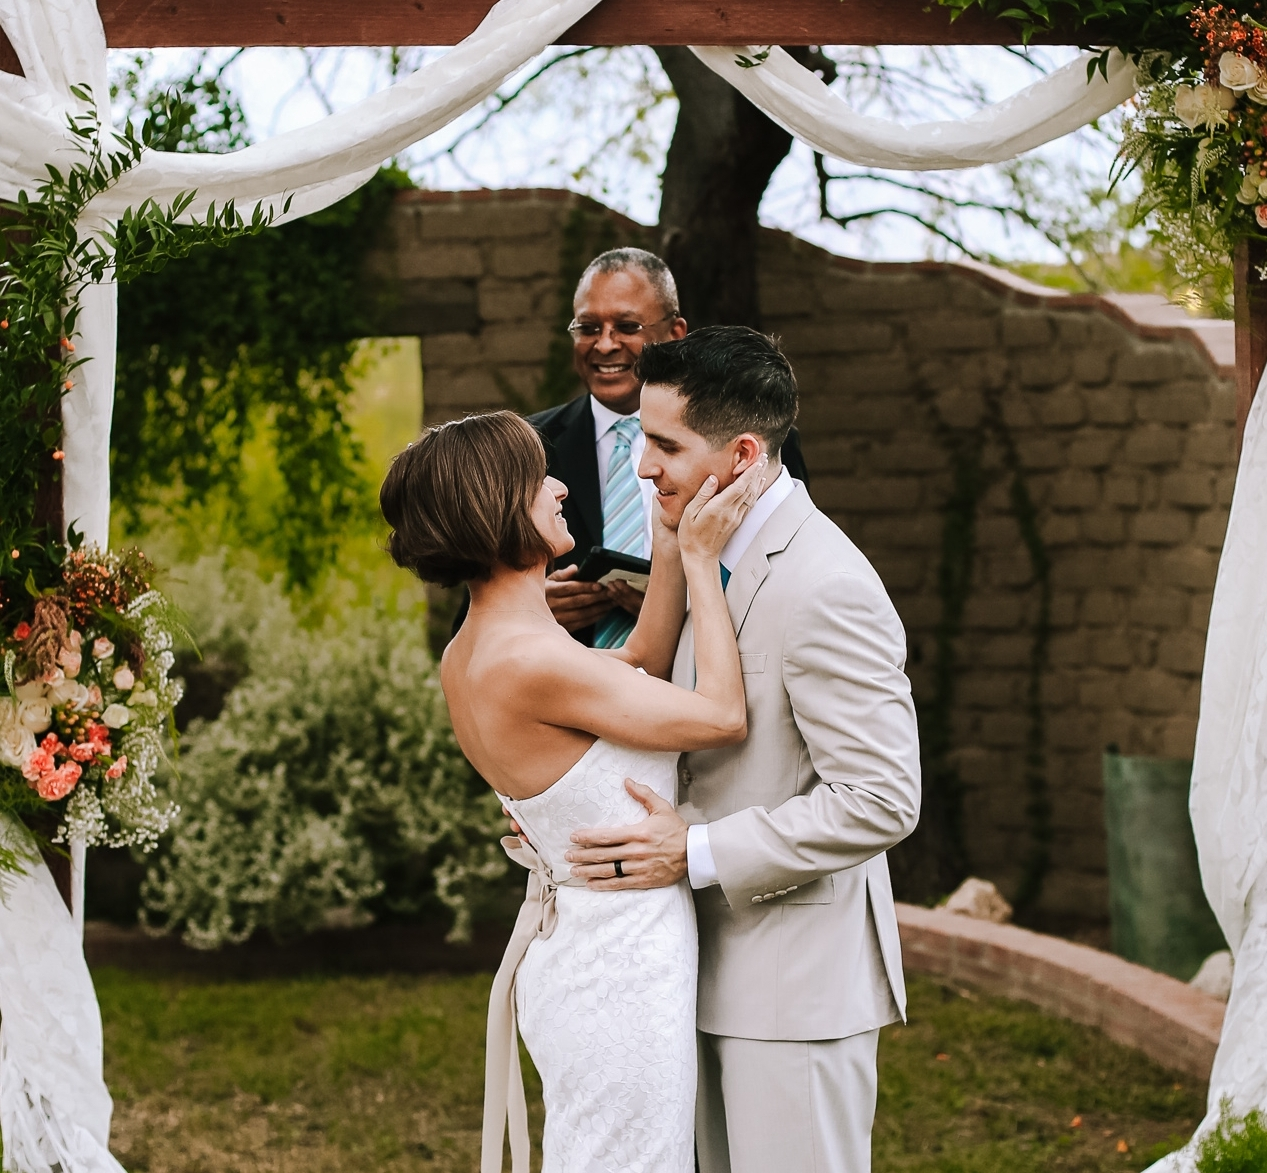 weddings Starting at $1250 - As your storyteller, I will be a fly on the wall, documenting and capturing your purest and most genuine interactions. I will encourage celebrations, tears, long embraces, vulnerability, and best day evers! I want you to be you, no matter what. In the end, I piece together your story and provide you with beautifully preserved timeless memories that you will be able to hand down from one generation to the next